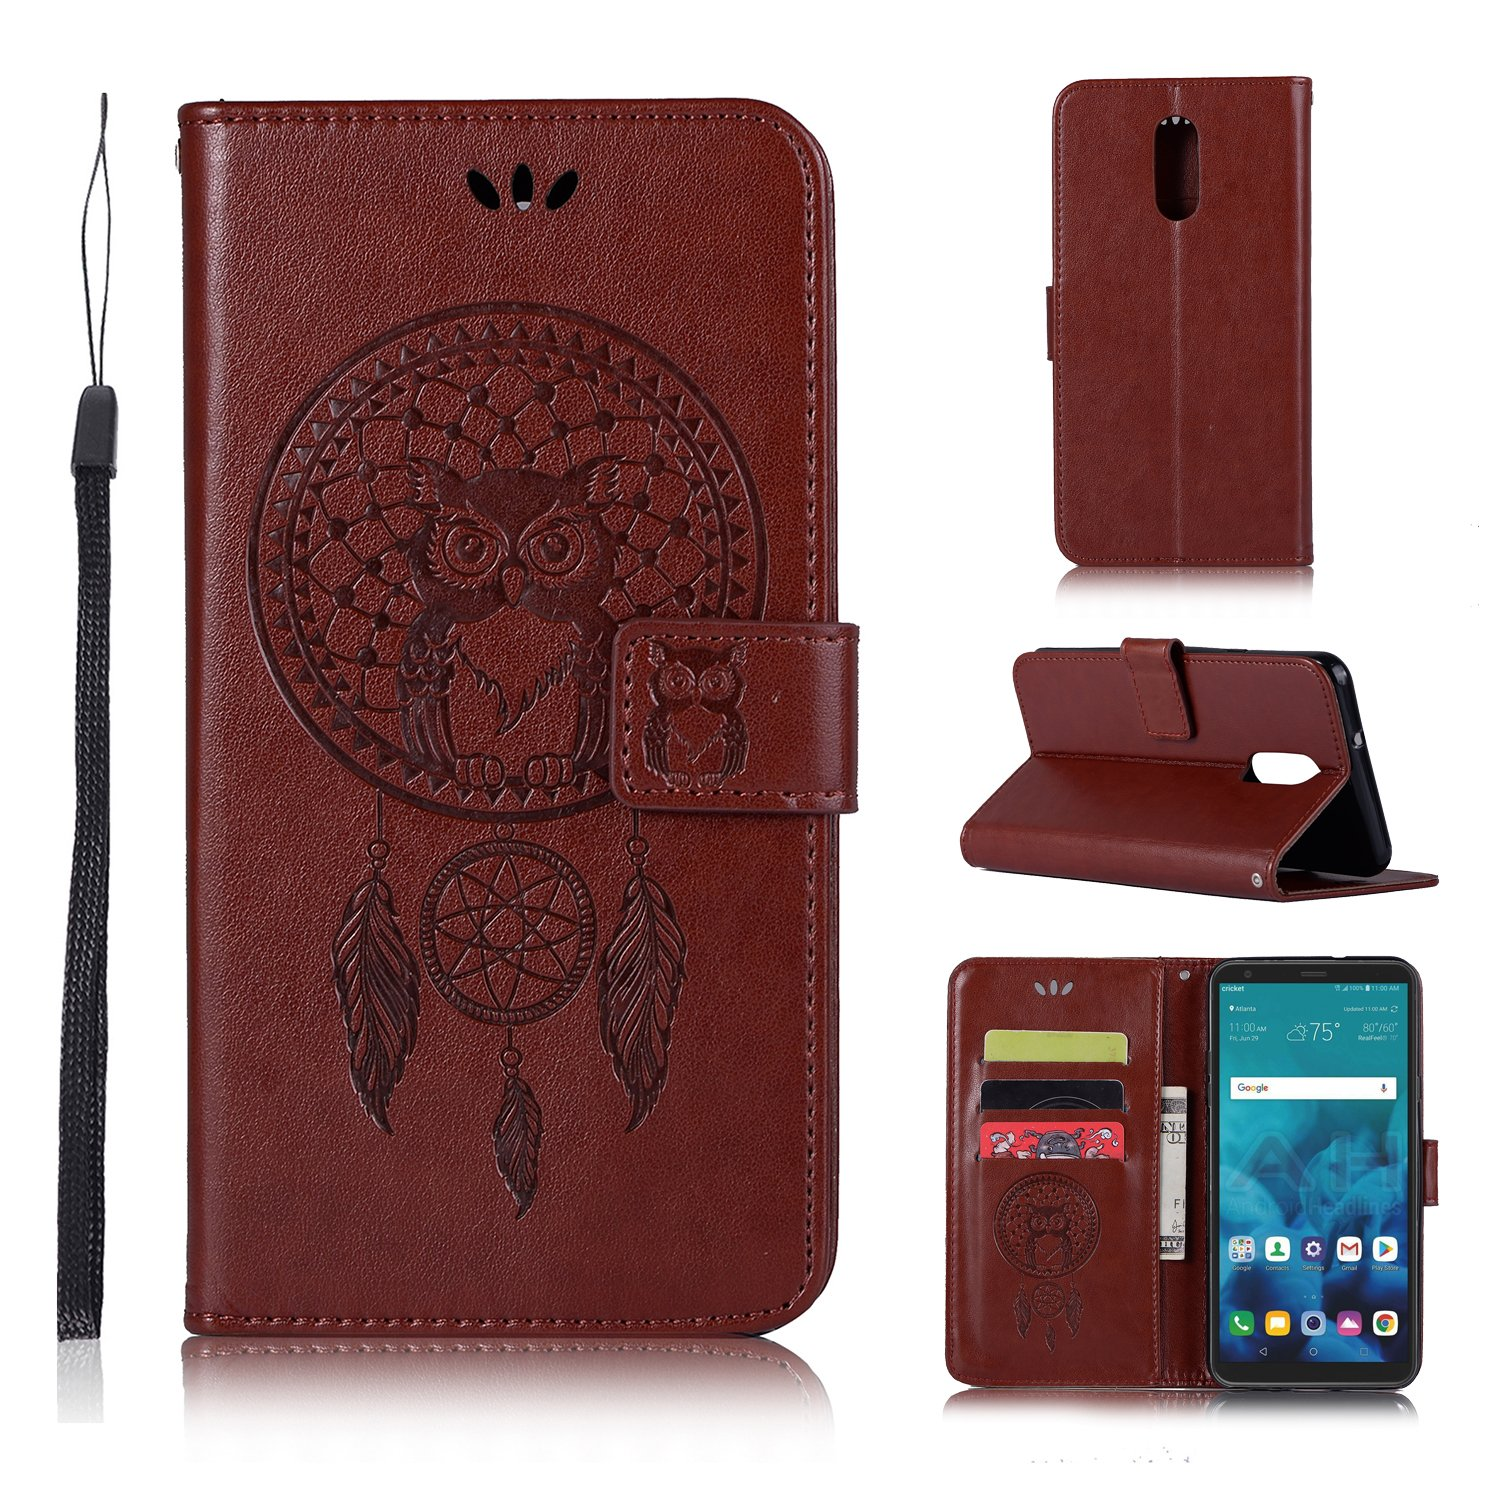 LG Stylo 4 Case,LG Q Stylus Case,LG Stylo 4 Plus,Stylus 4 Wallet Case,PU leather Case Owl Dreamcatcher Pattern Embossed Purse with Kickstand Flip Cover Card Holders Hand Strap for LG Stylo 4 Black A-slim